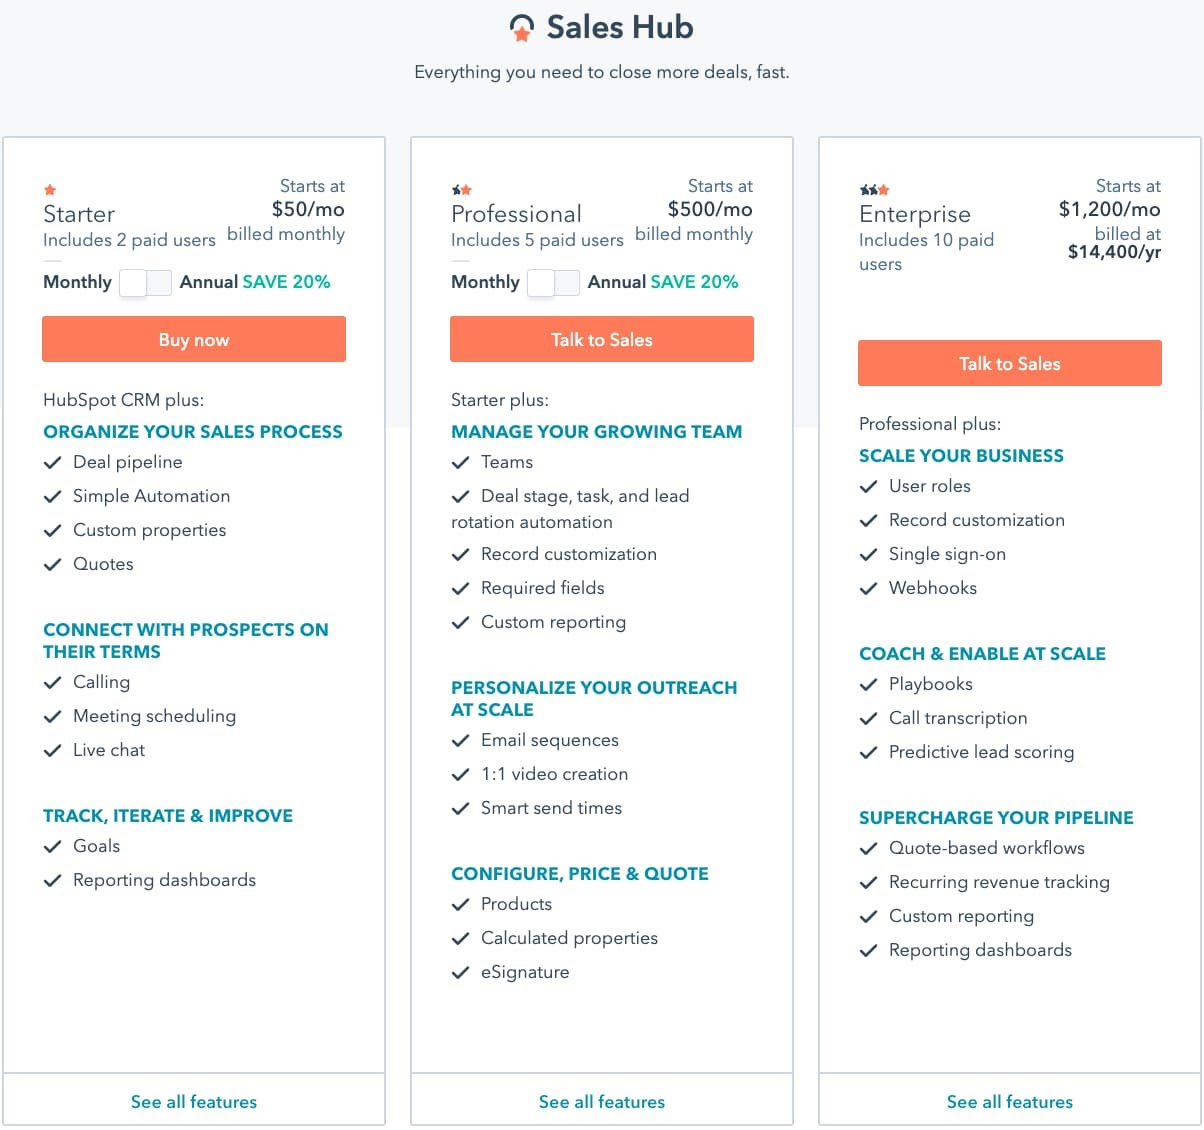 Example of good sales content - good product comparison